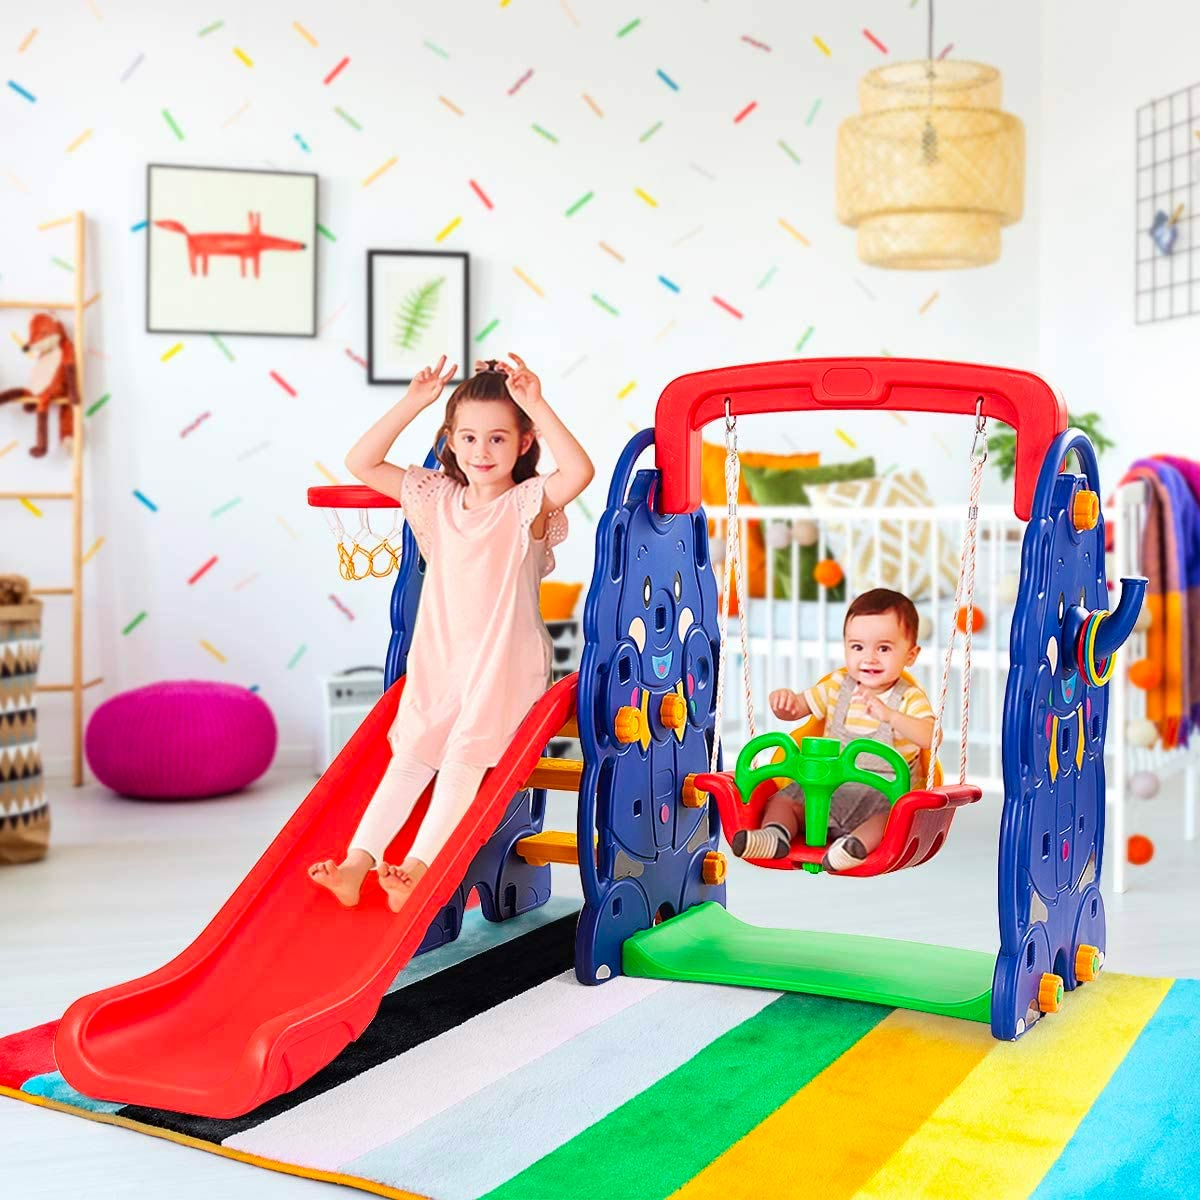 Two young toddlers playing on a toy slide